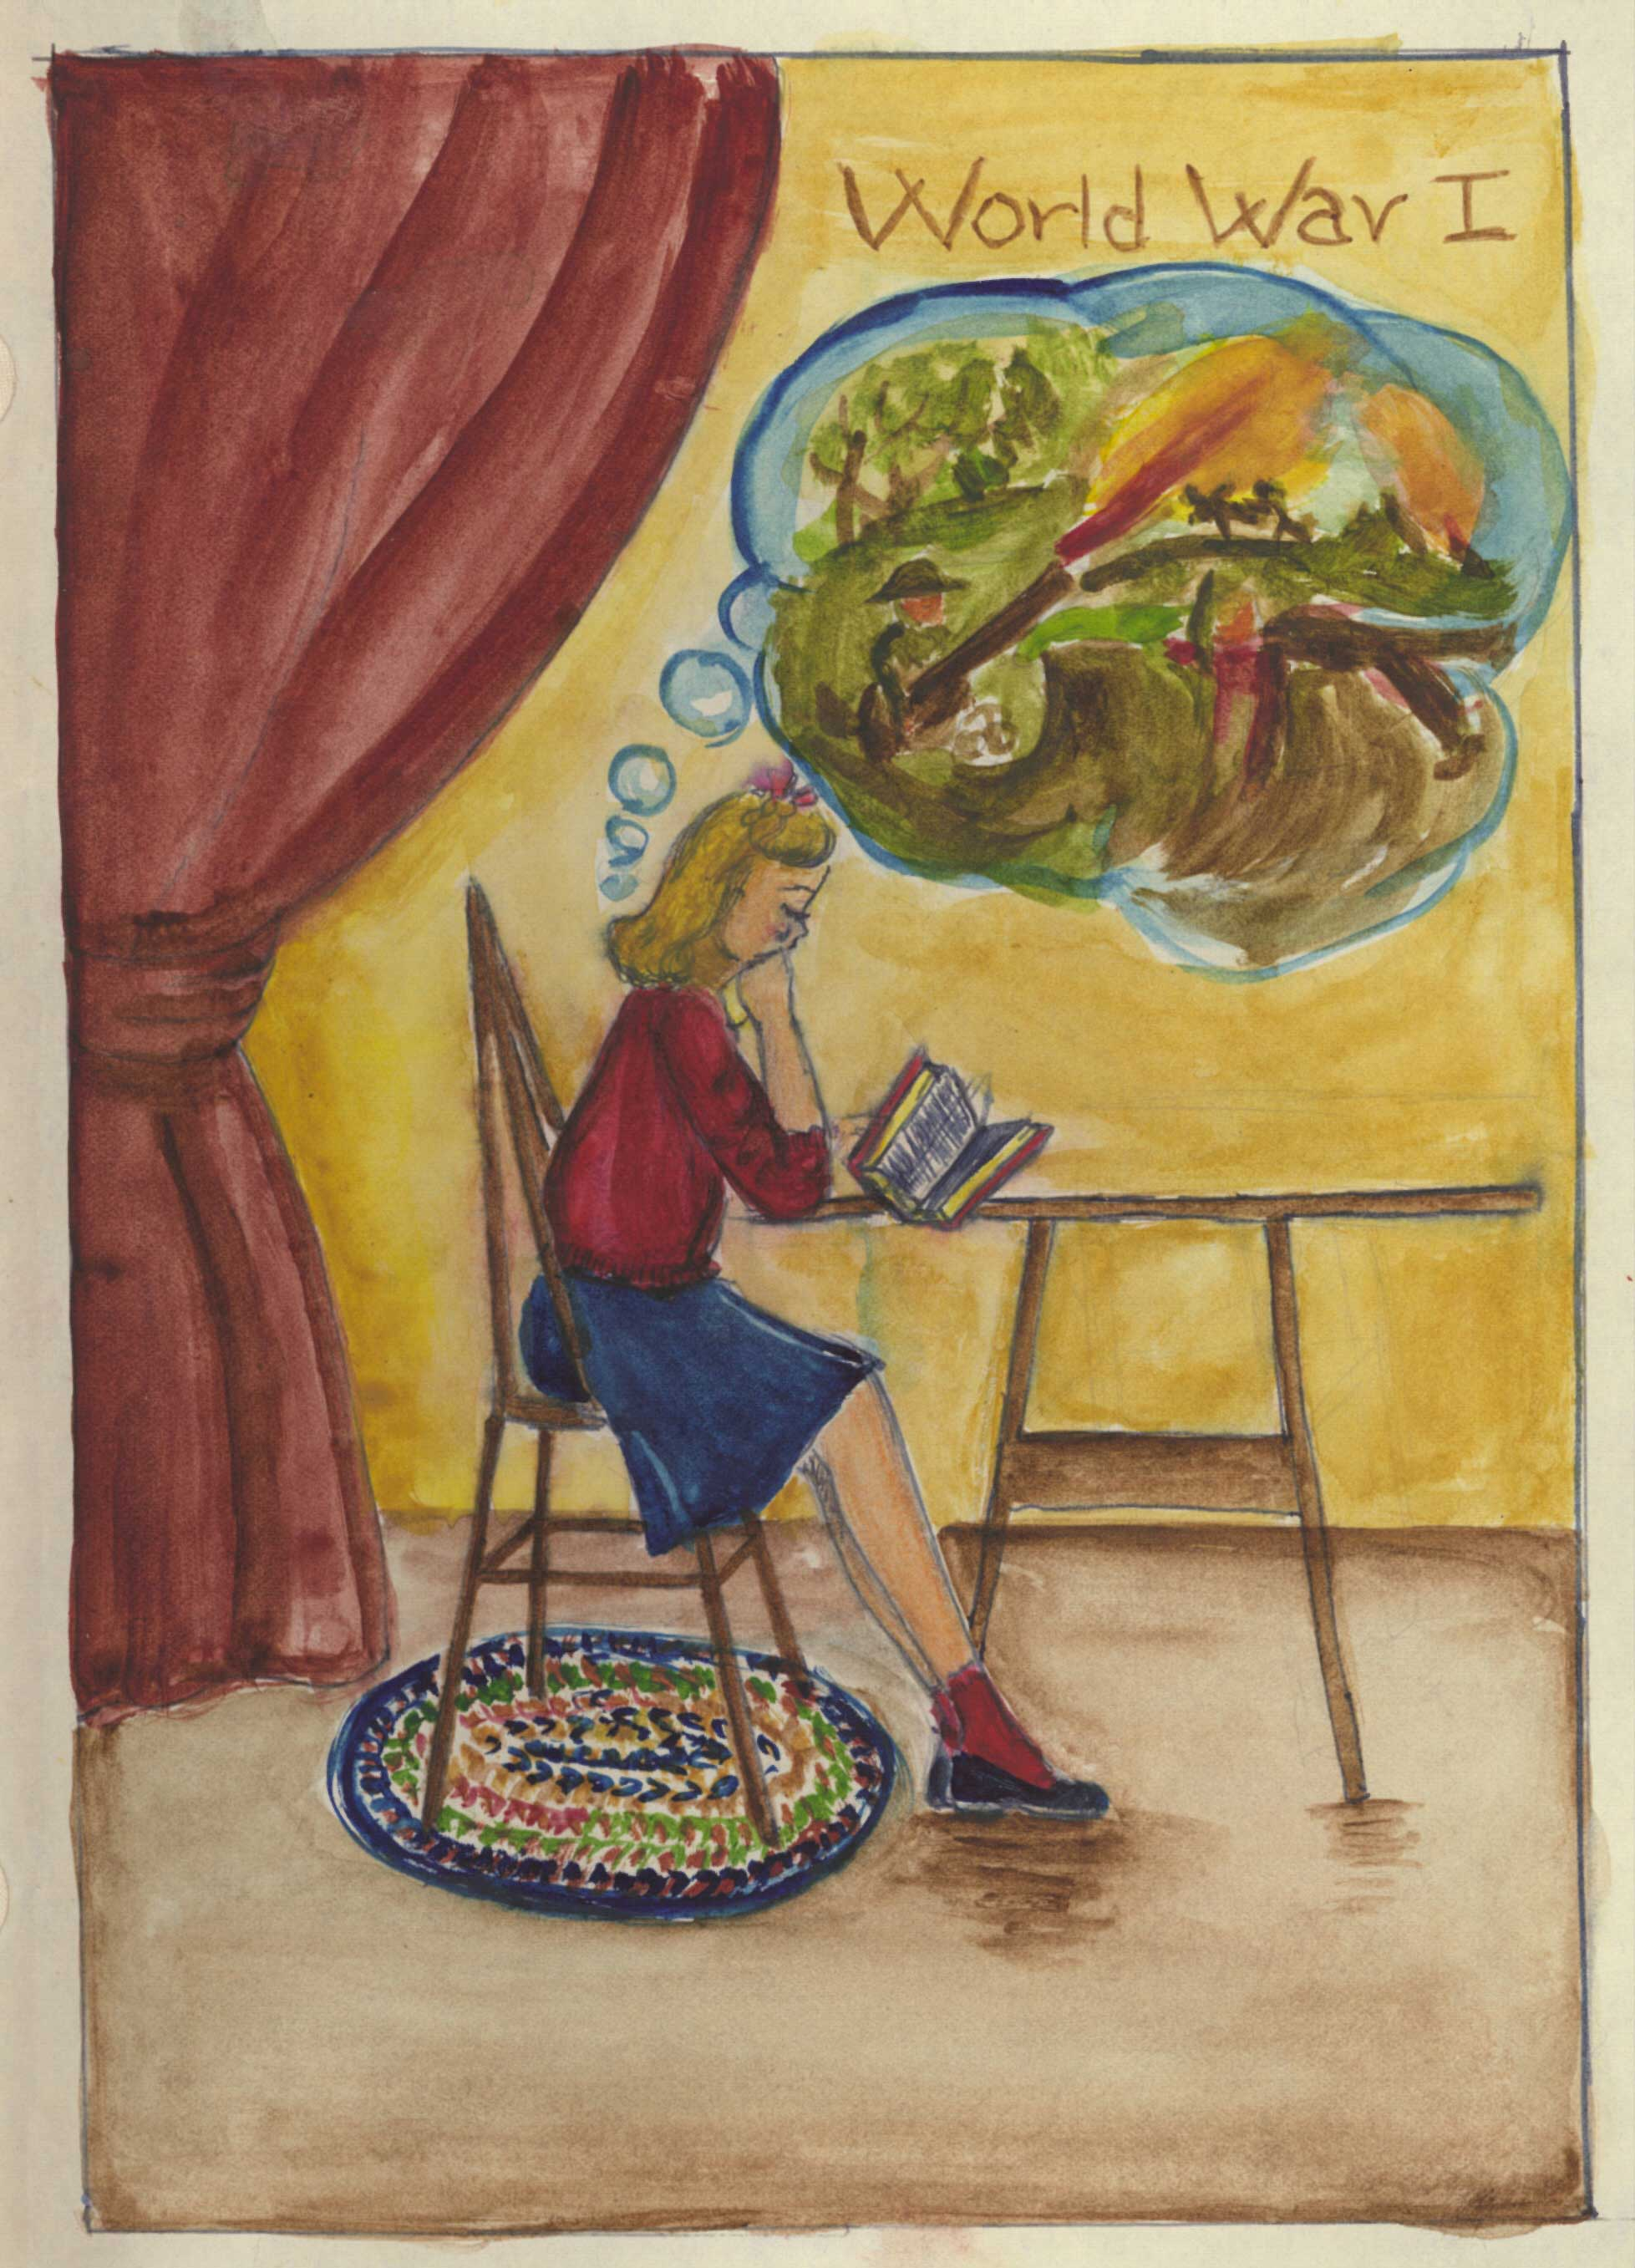 A drawing of a young girl reading a book and imagining a battle in a thought bubble